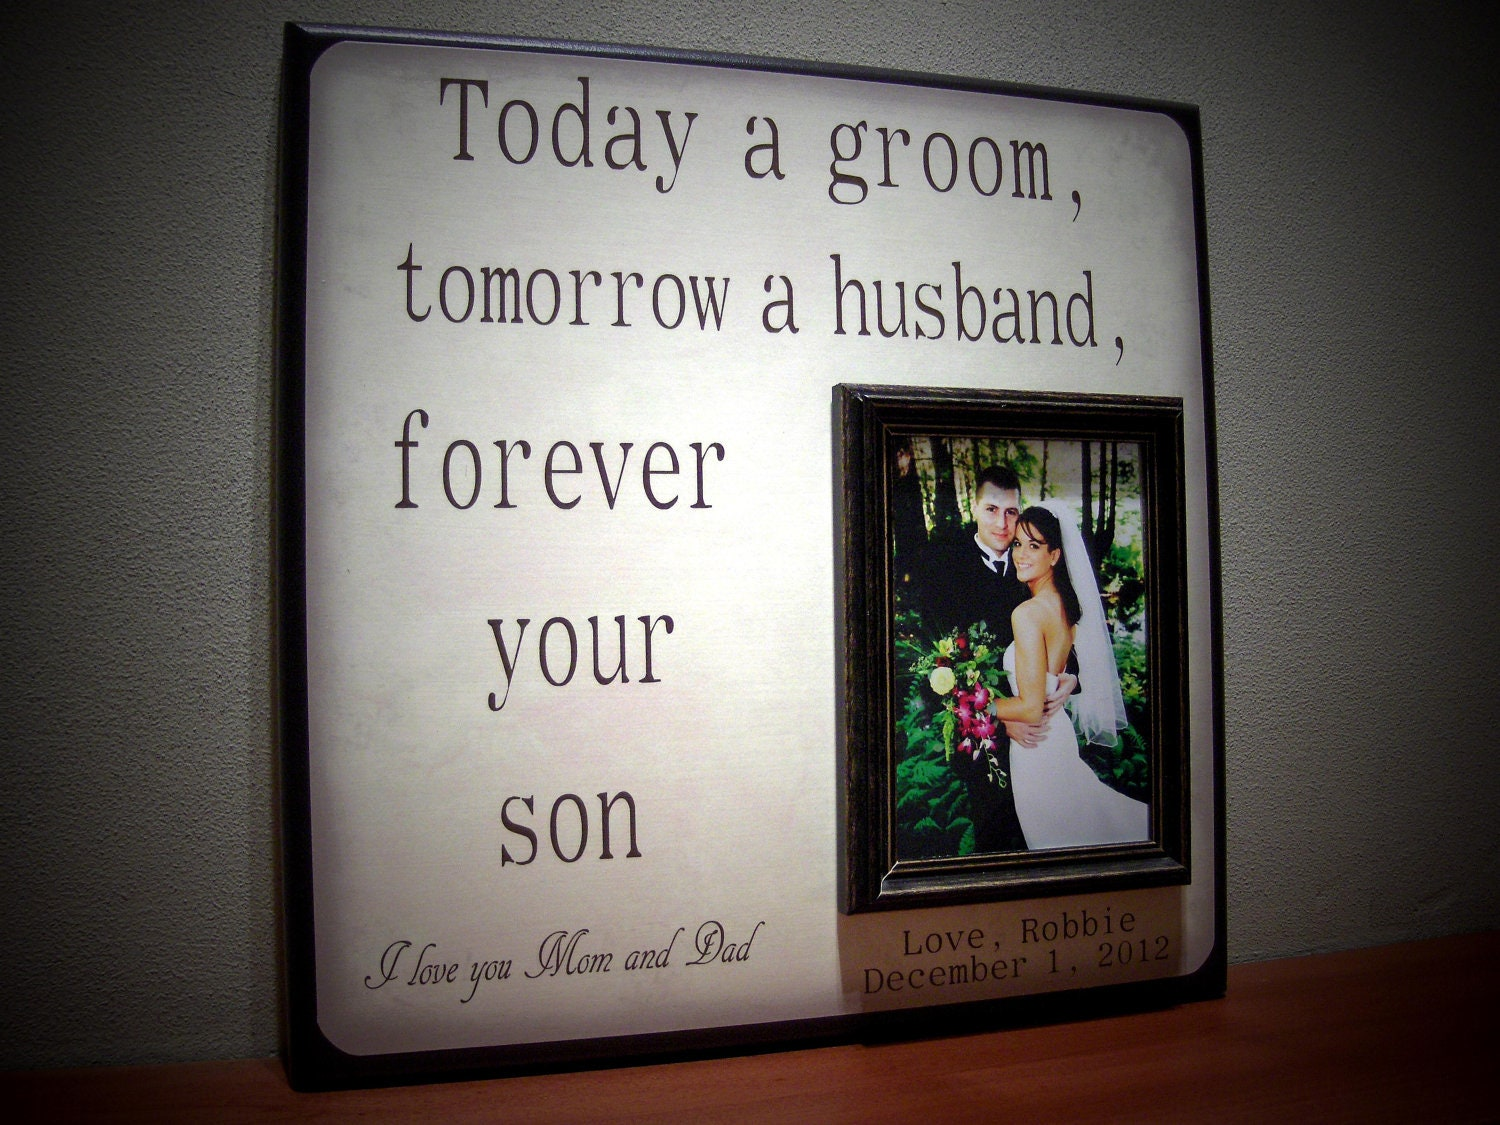 Wedding Gifts For Parents Of The Groom : Mother of the Groom Gift Father of the Groom by YourPictureStory